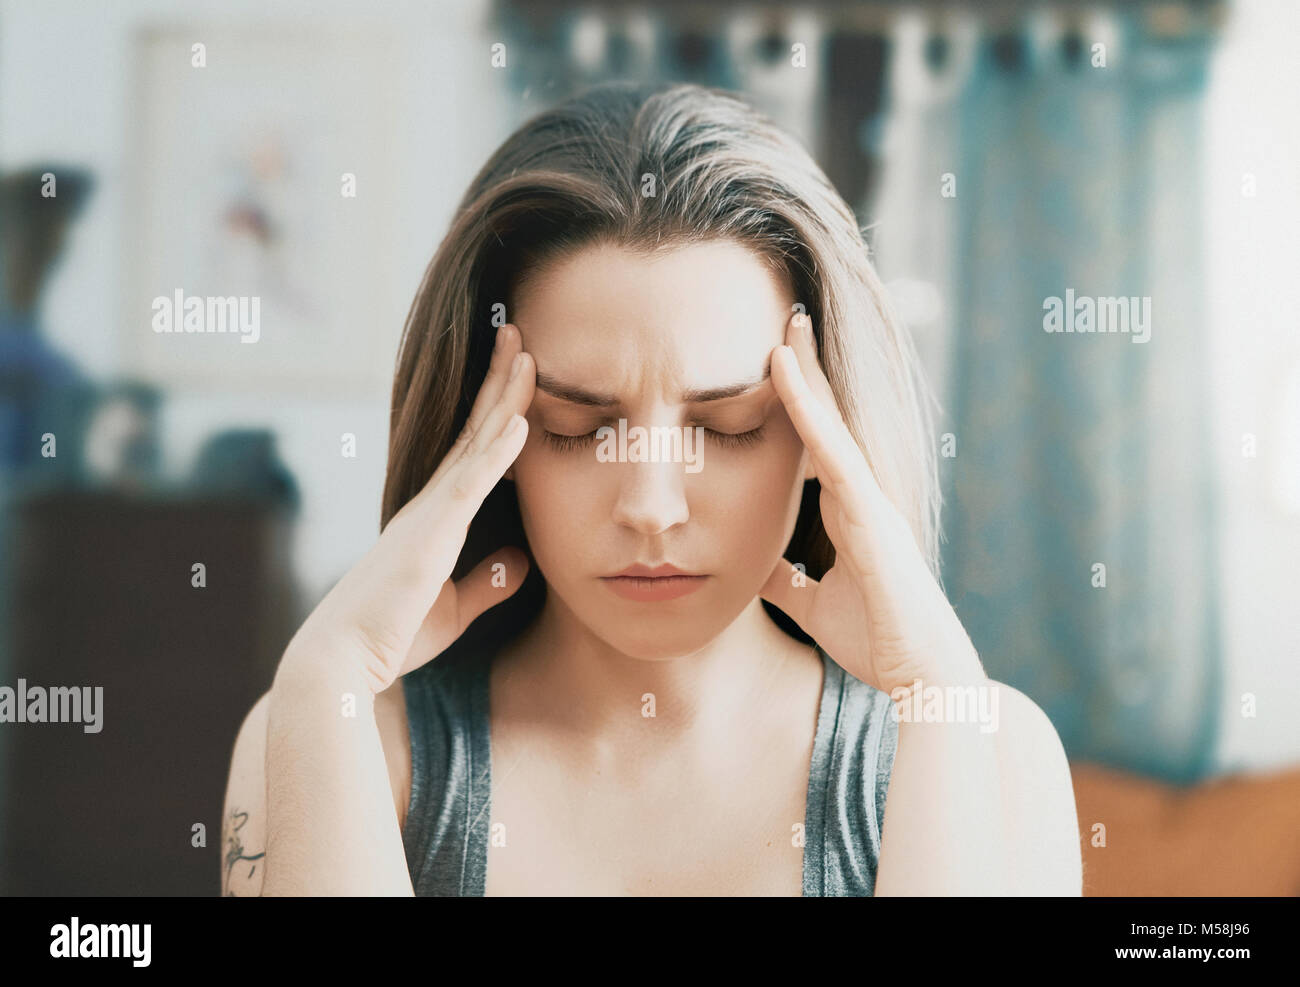 Woman with headache, stress and pain, care - Stock Image